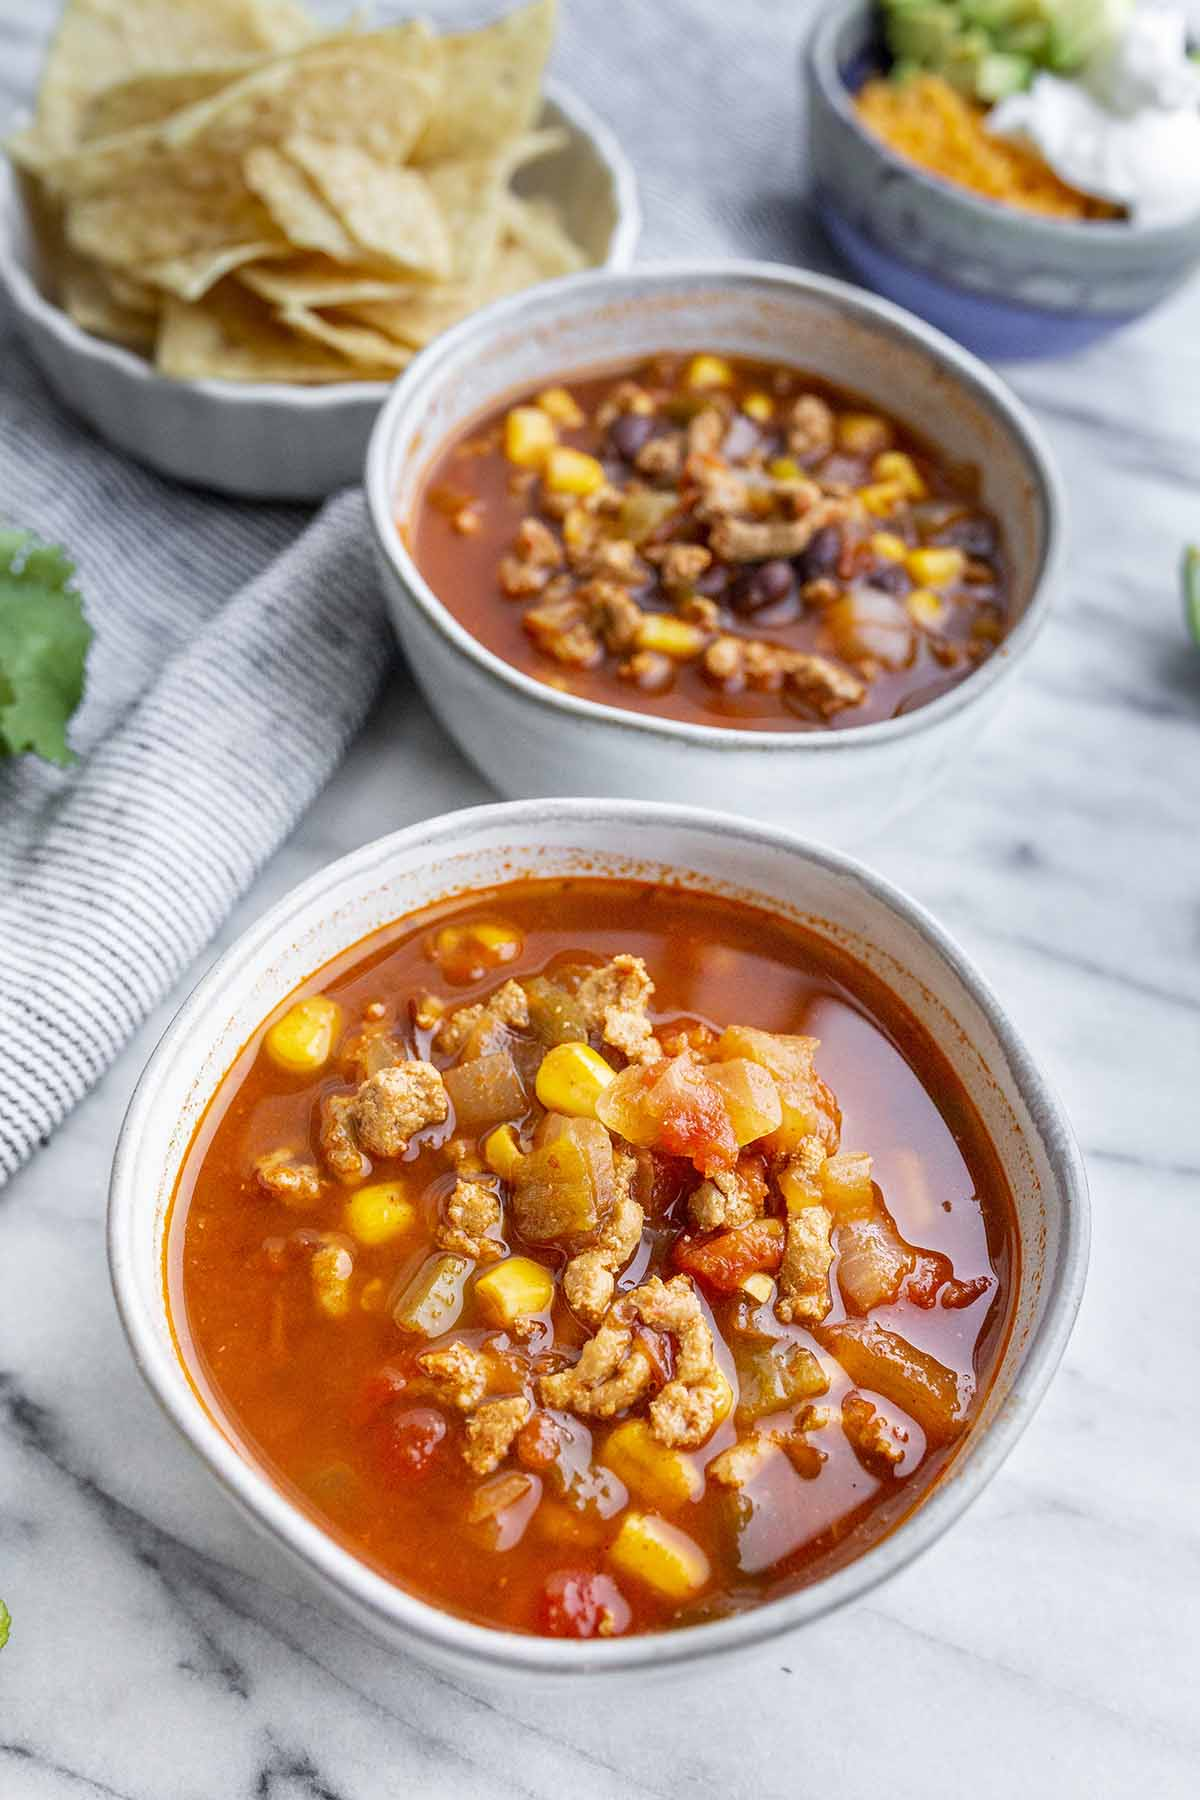 Broth Turkey Taco Soup Recipe served with tortilla chips, avocado, cheese and sour cream